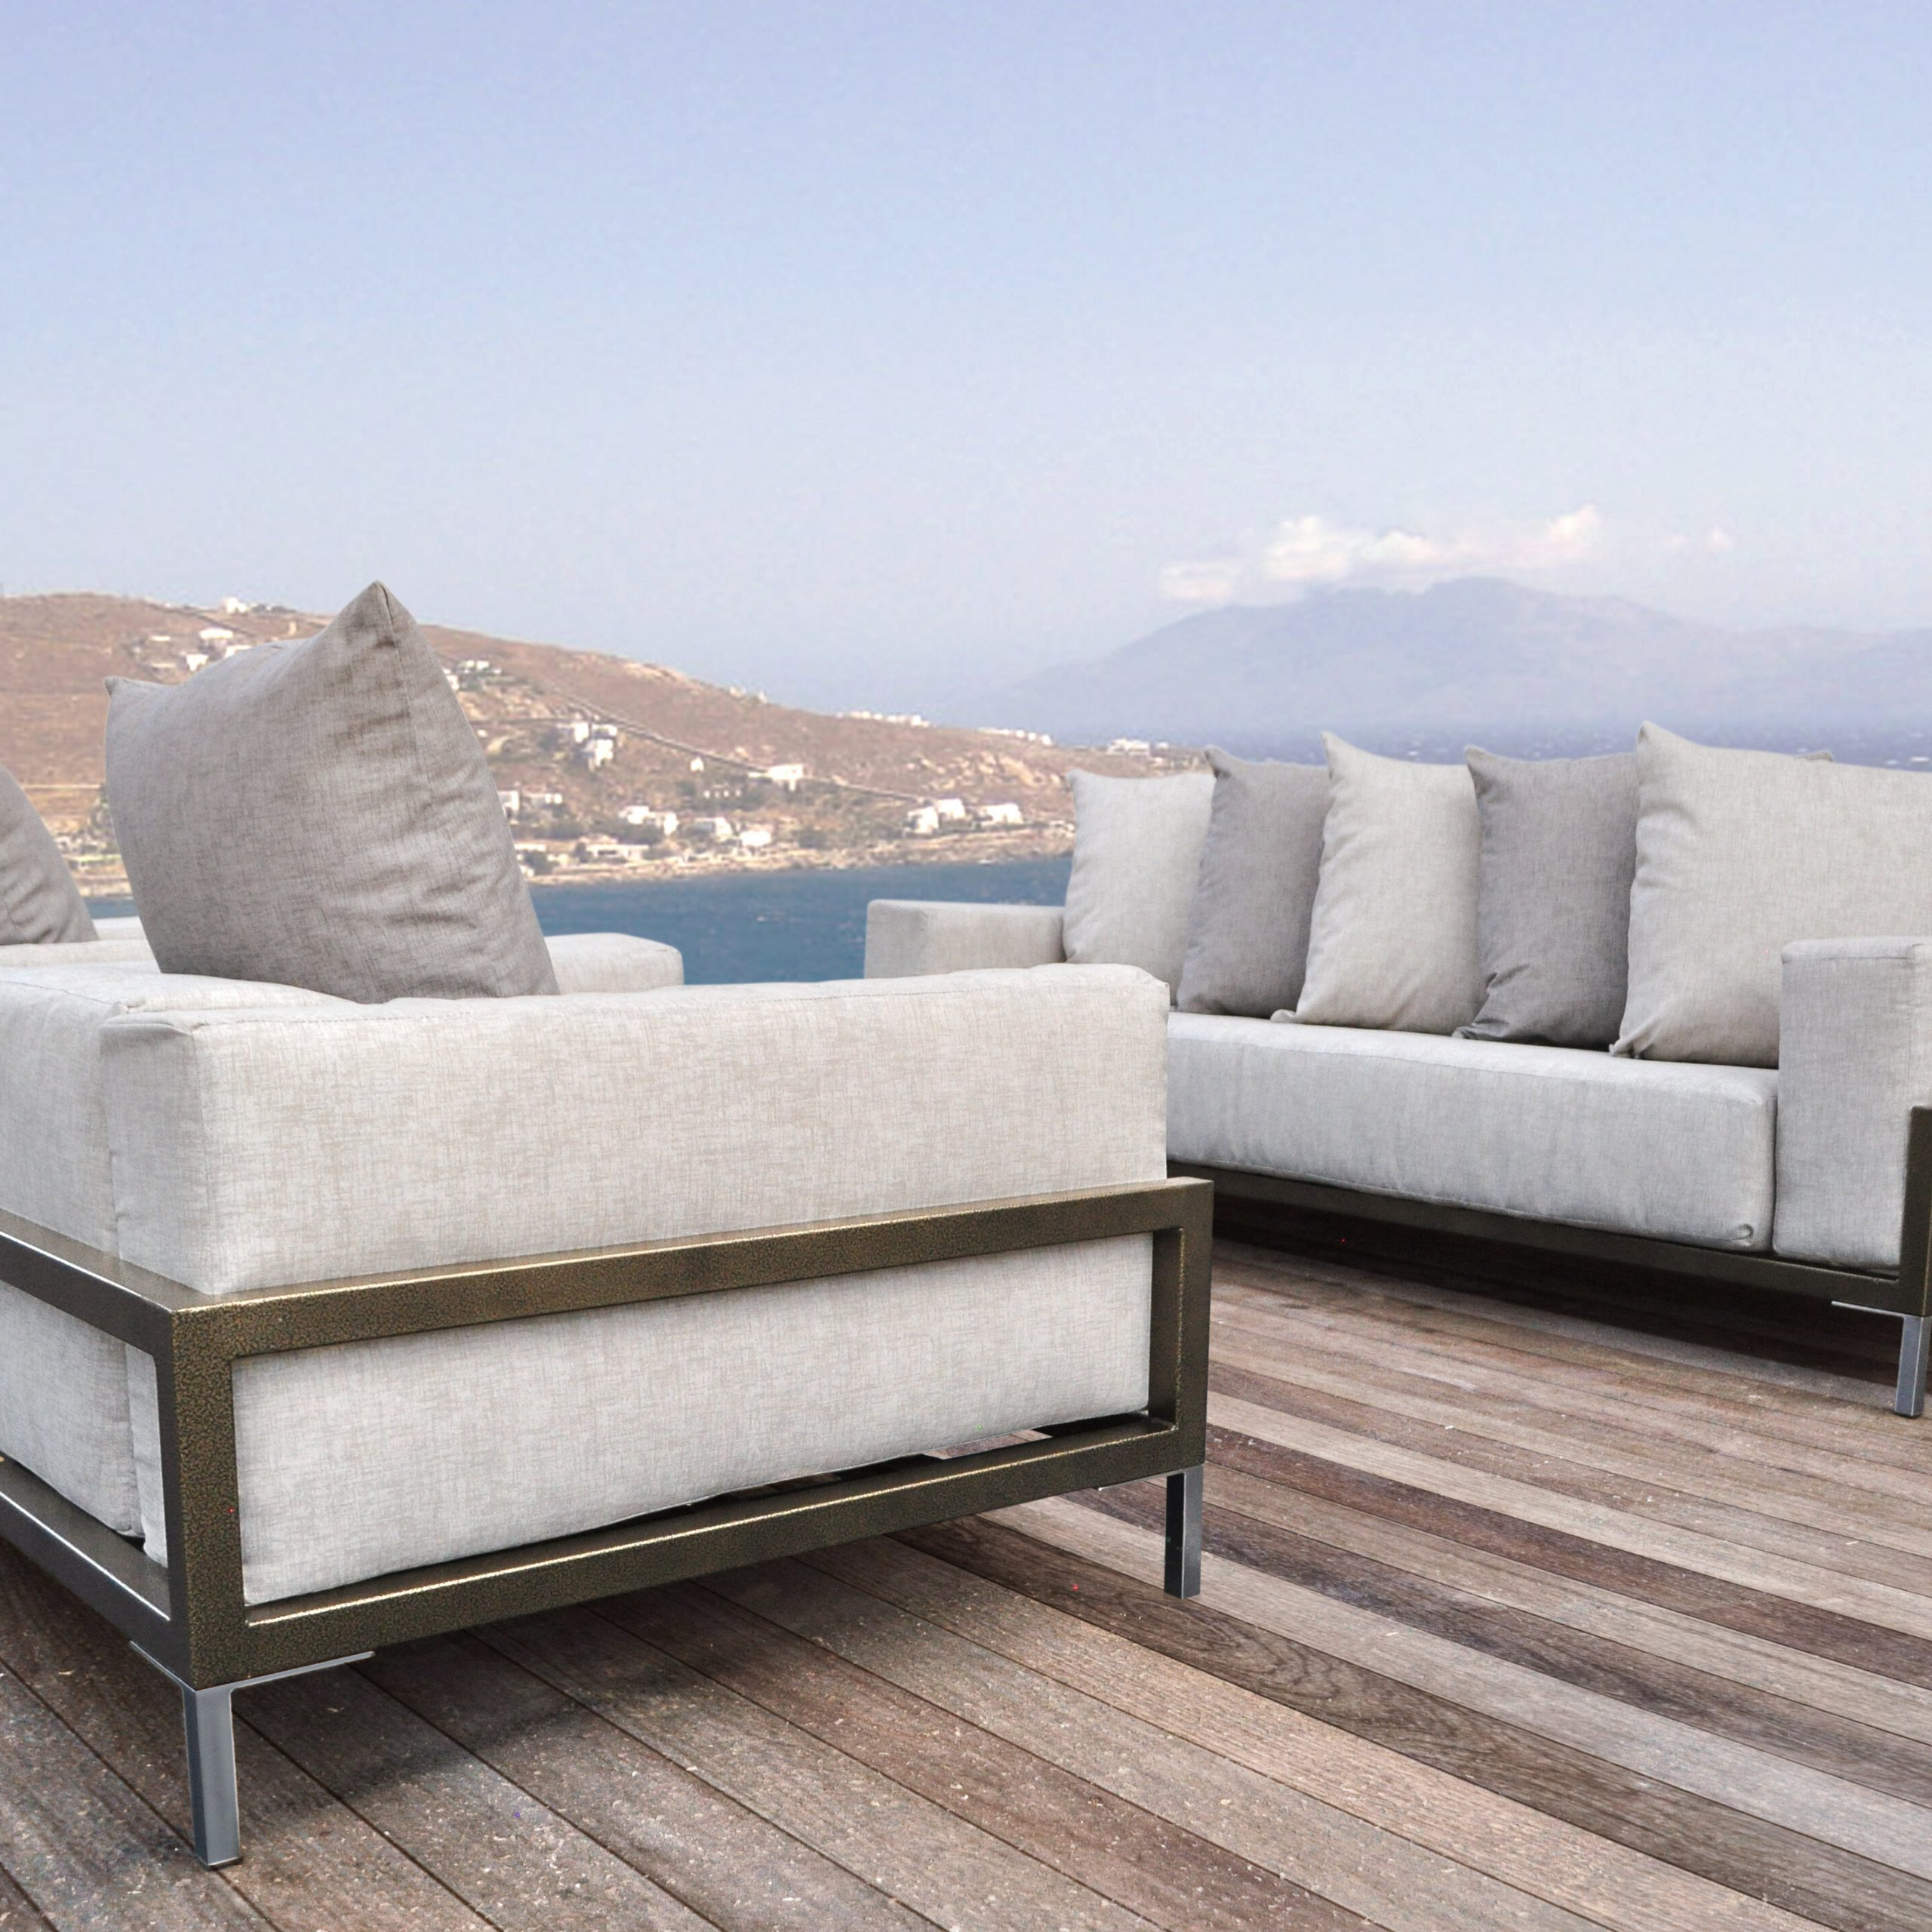 Preferred Salvato Sofas With Cushion Inside Tilly 3 Piece Sunbrella Sofa Set With Cushions (View 9 of 25)